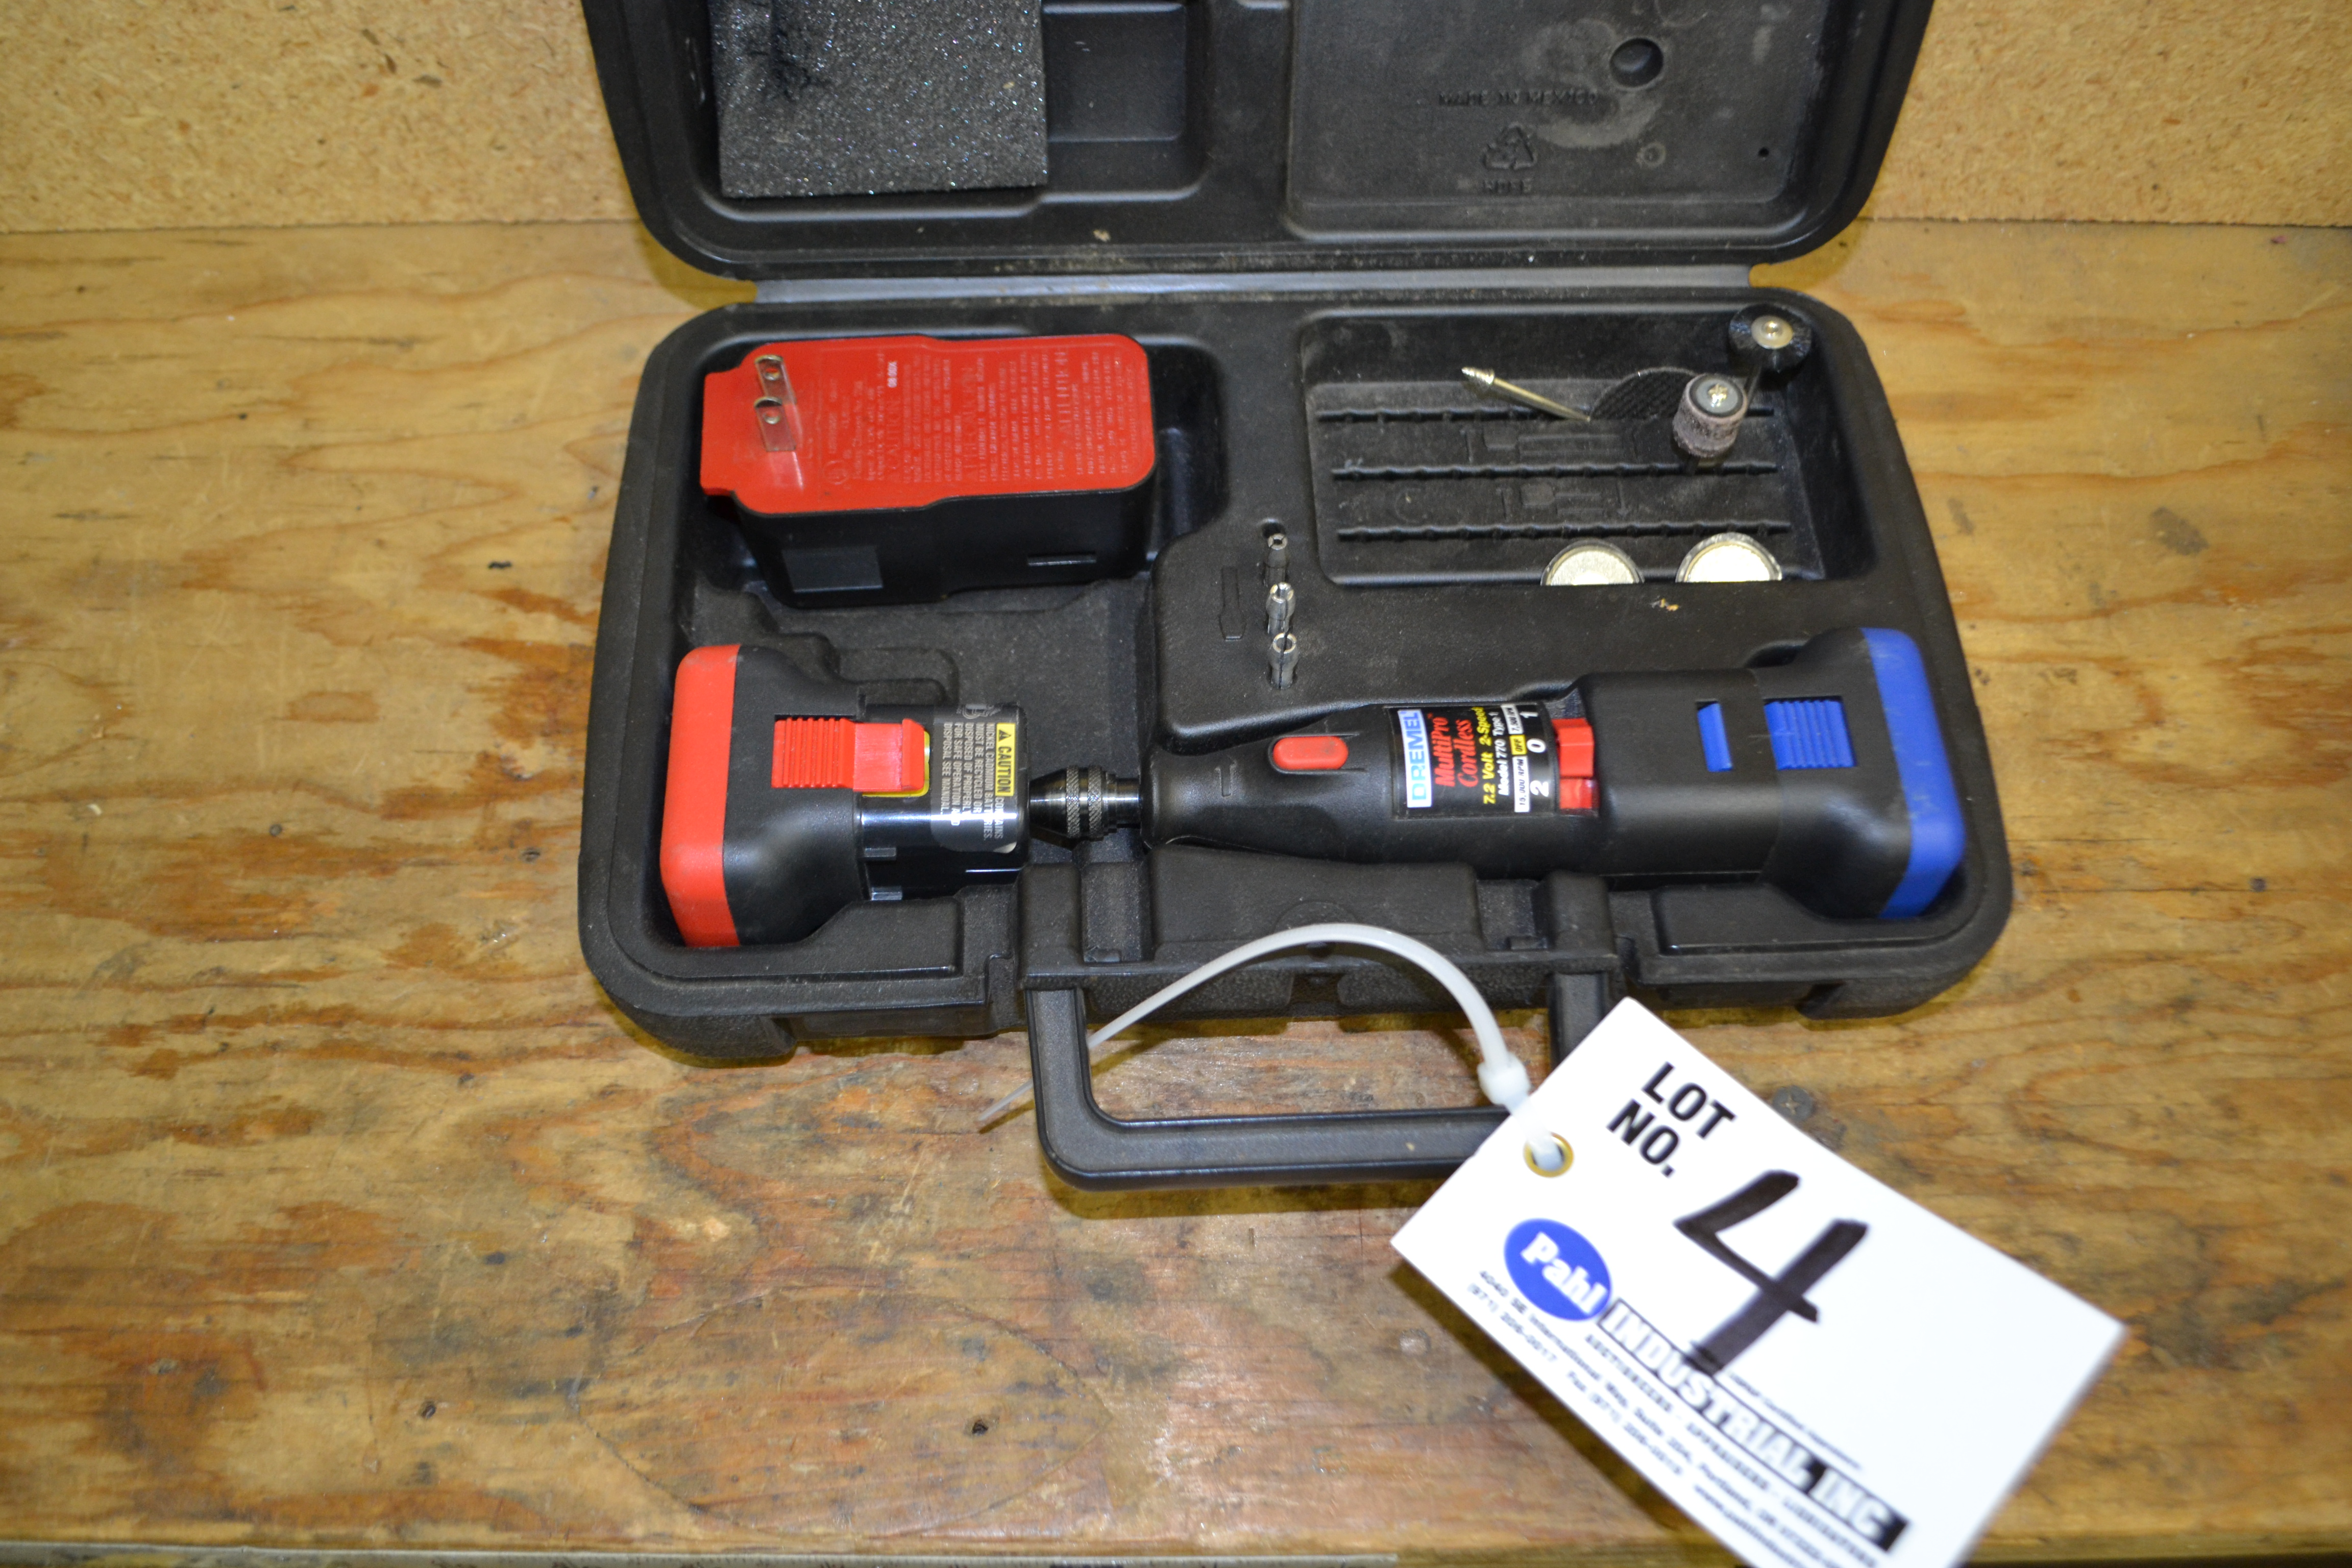 Dremel Multipro Cordless 7.2V 2spd Model 770 Type 1 c/w 2 Batteries and Charger